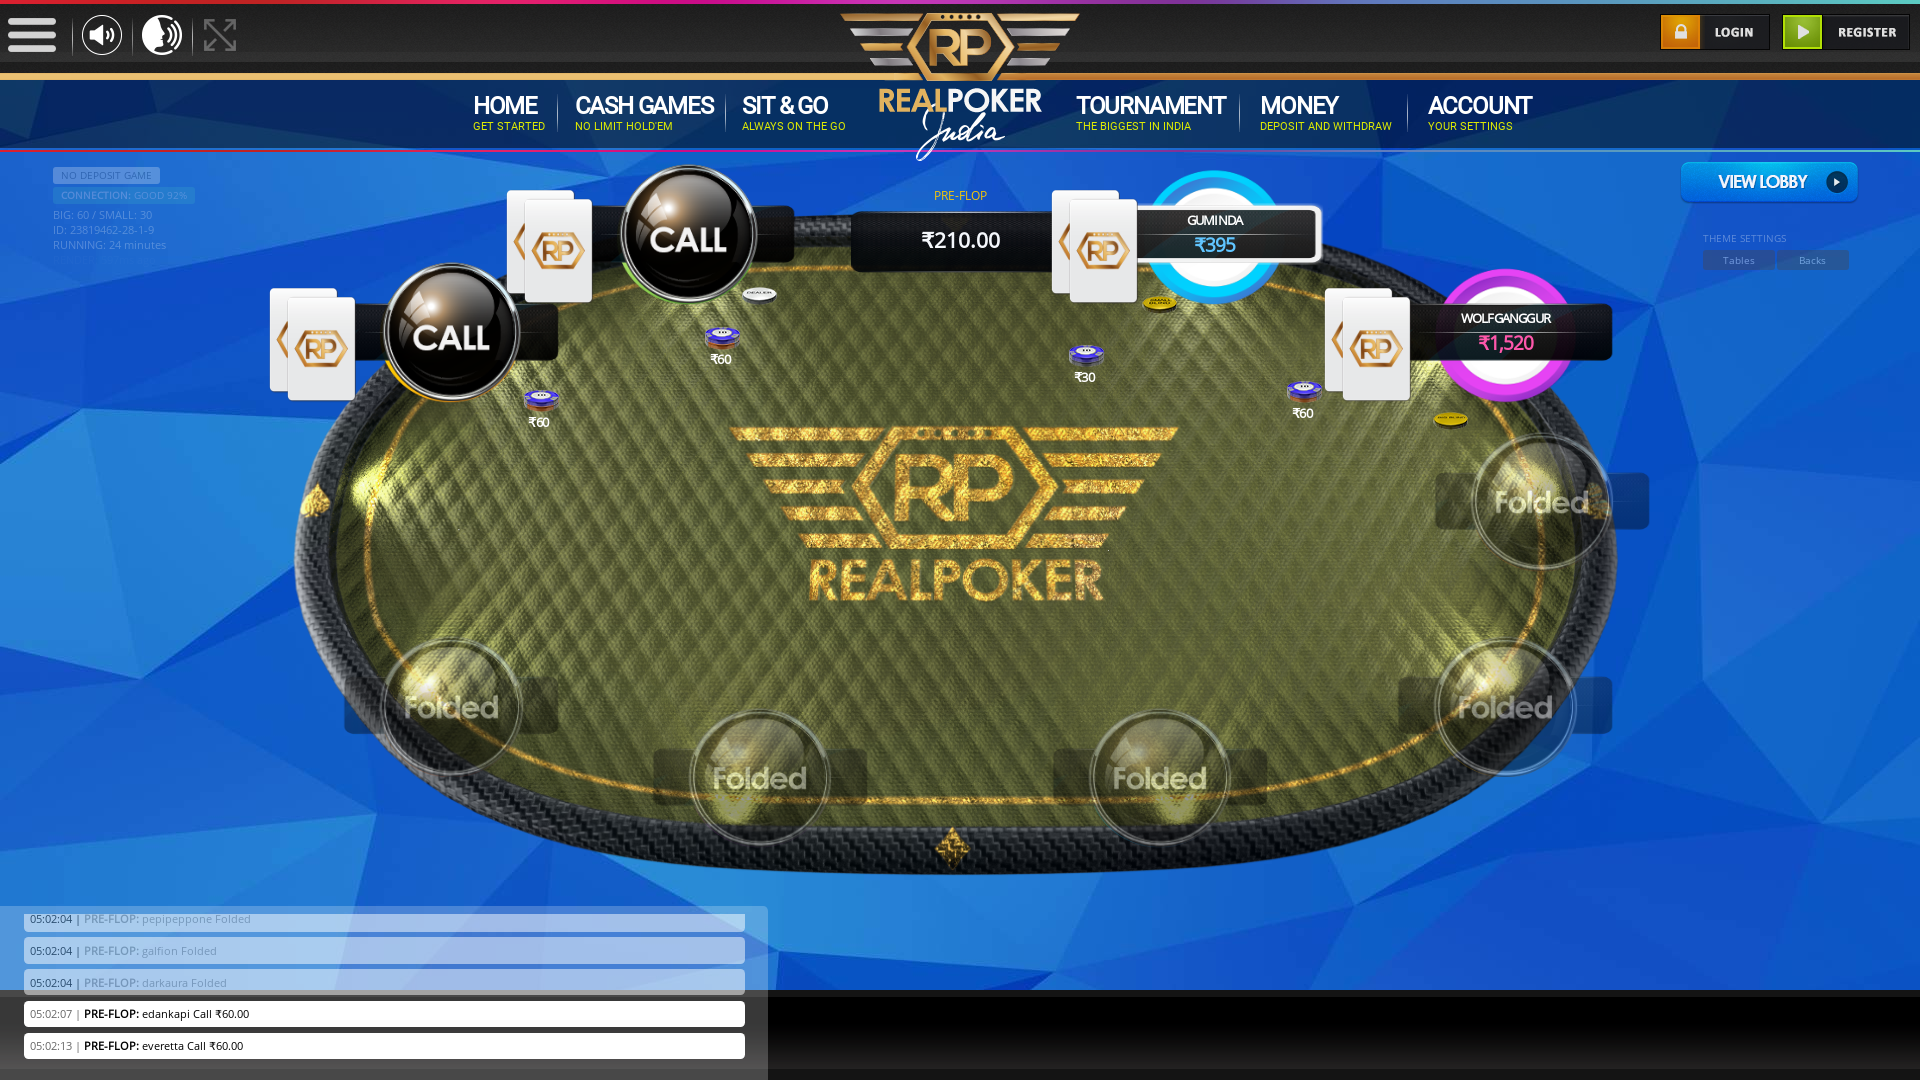 10 player texas holdem table at real poker with the table id 23819462